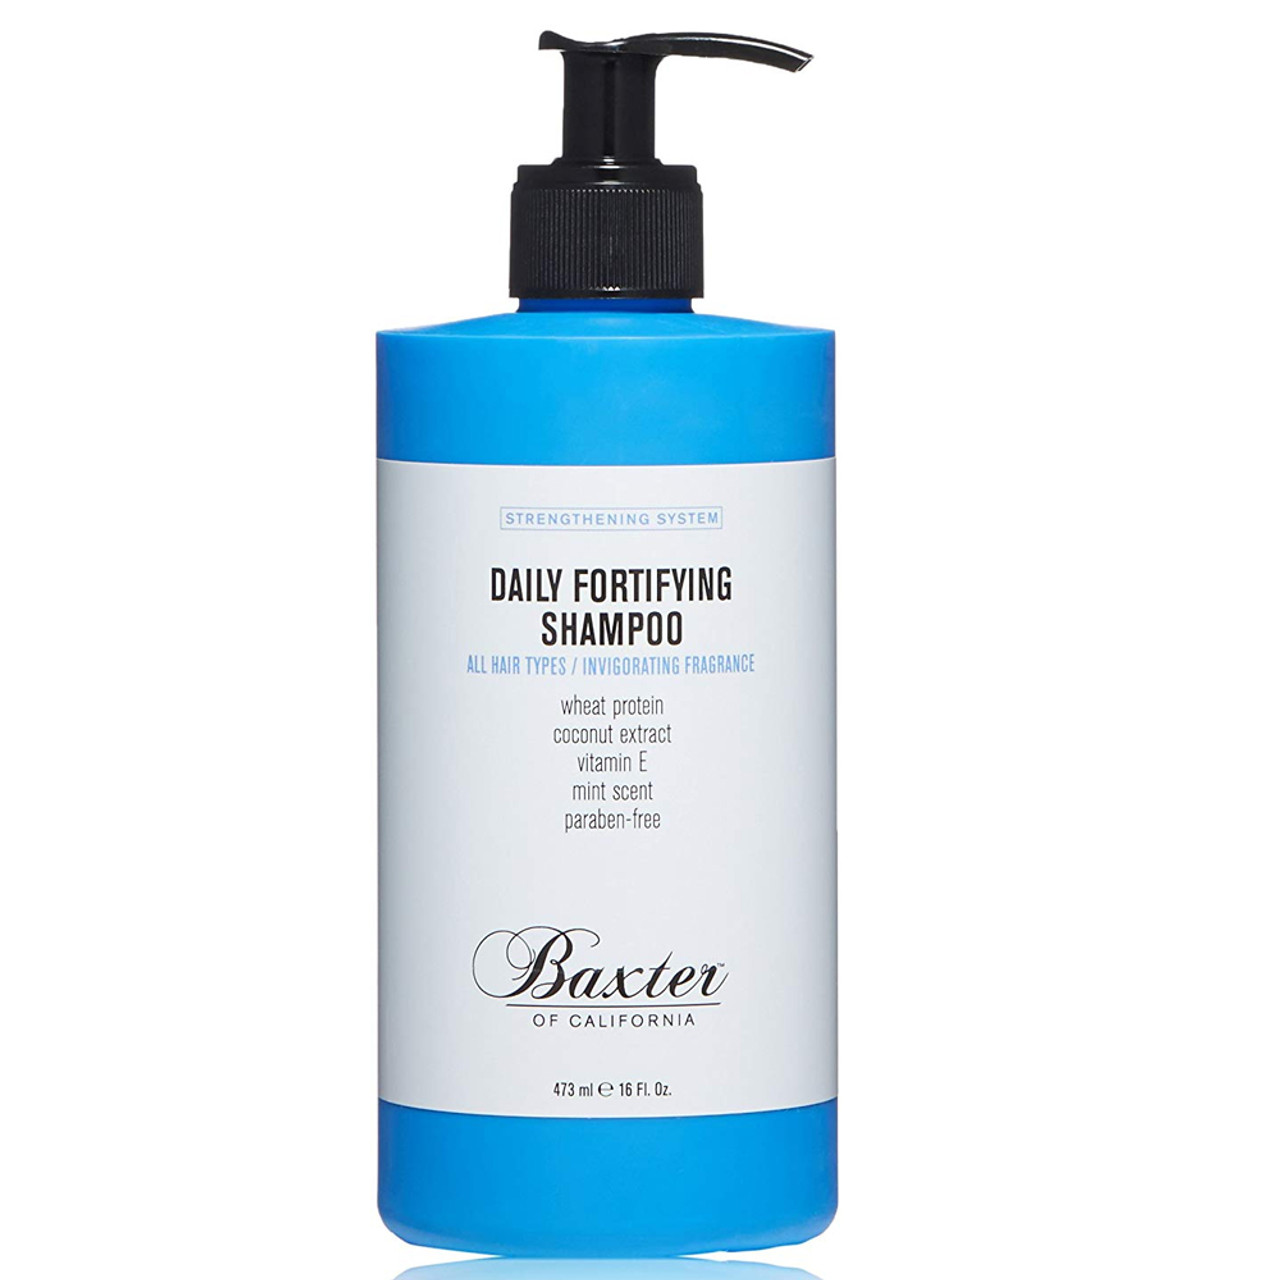 Baxter of California Daily Fortifying Shampoo 8 oz